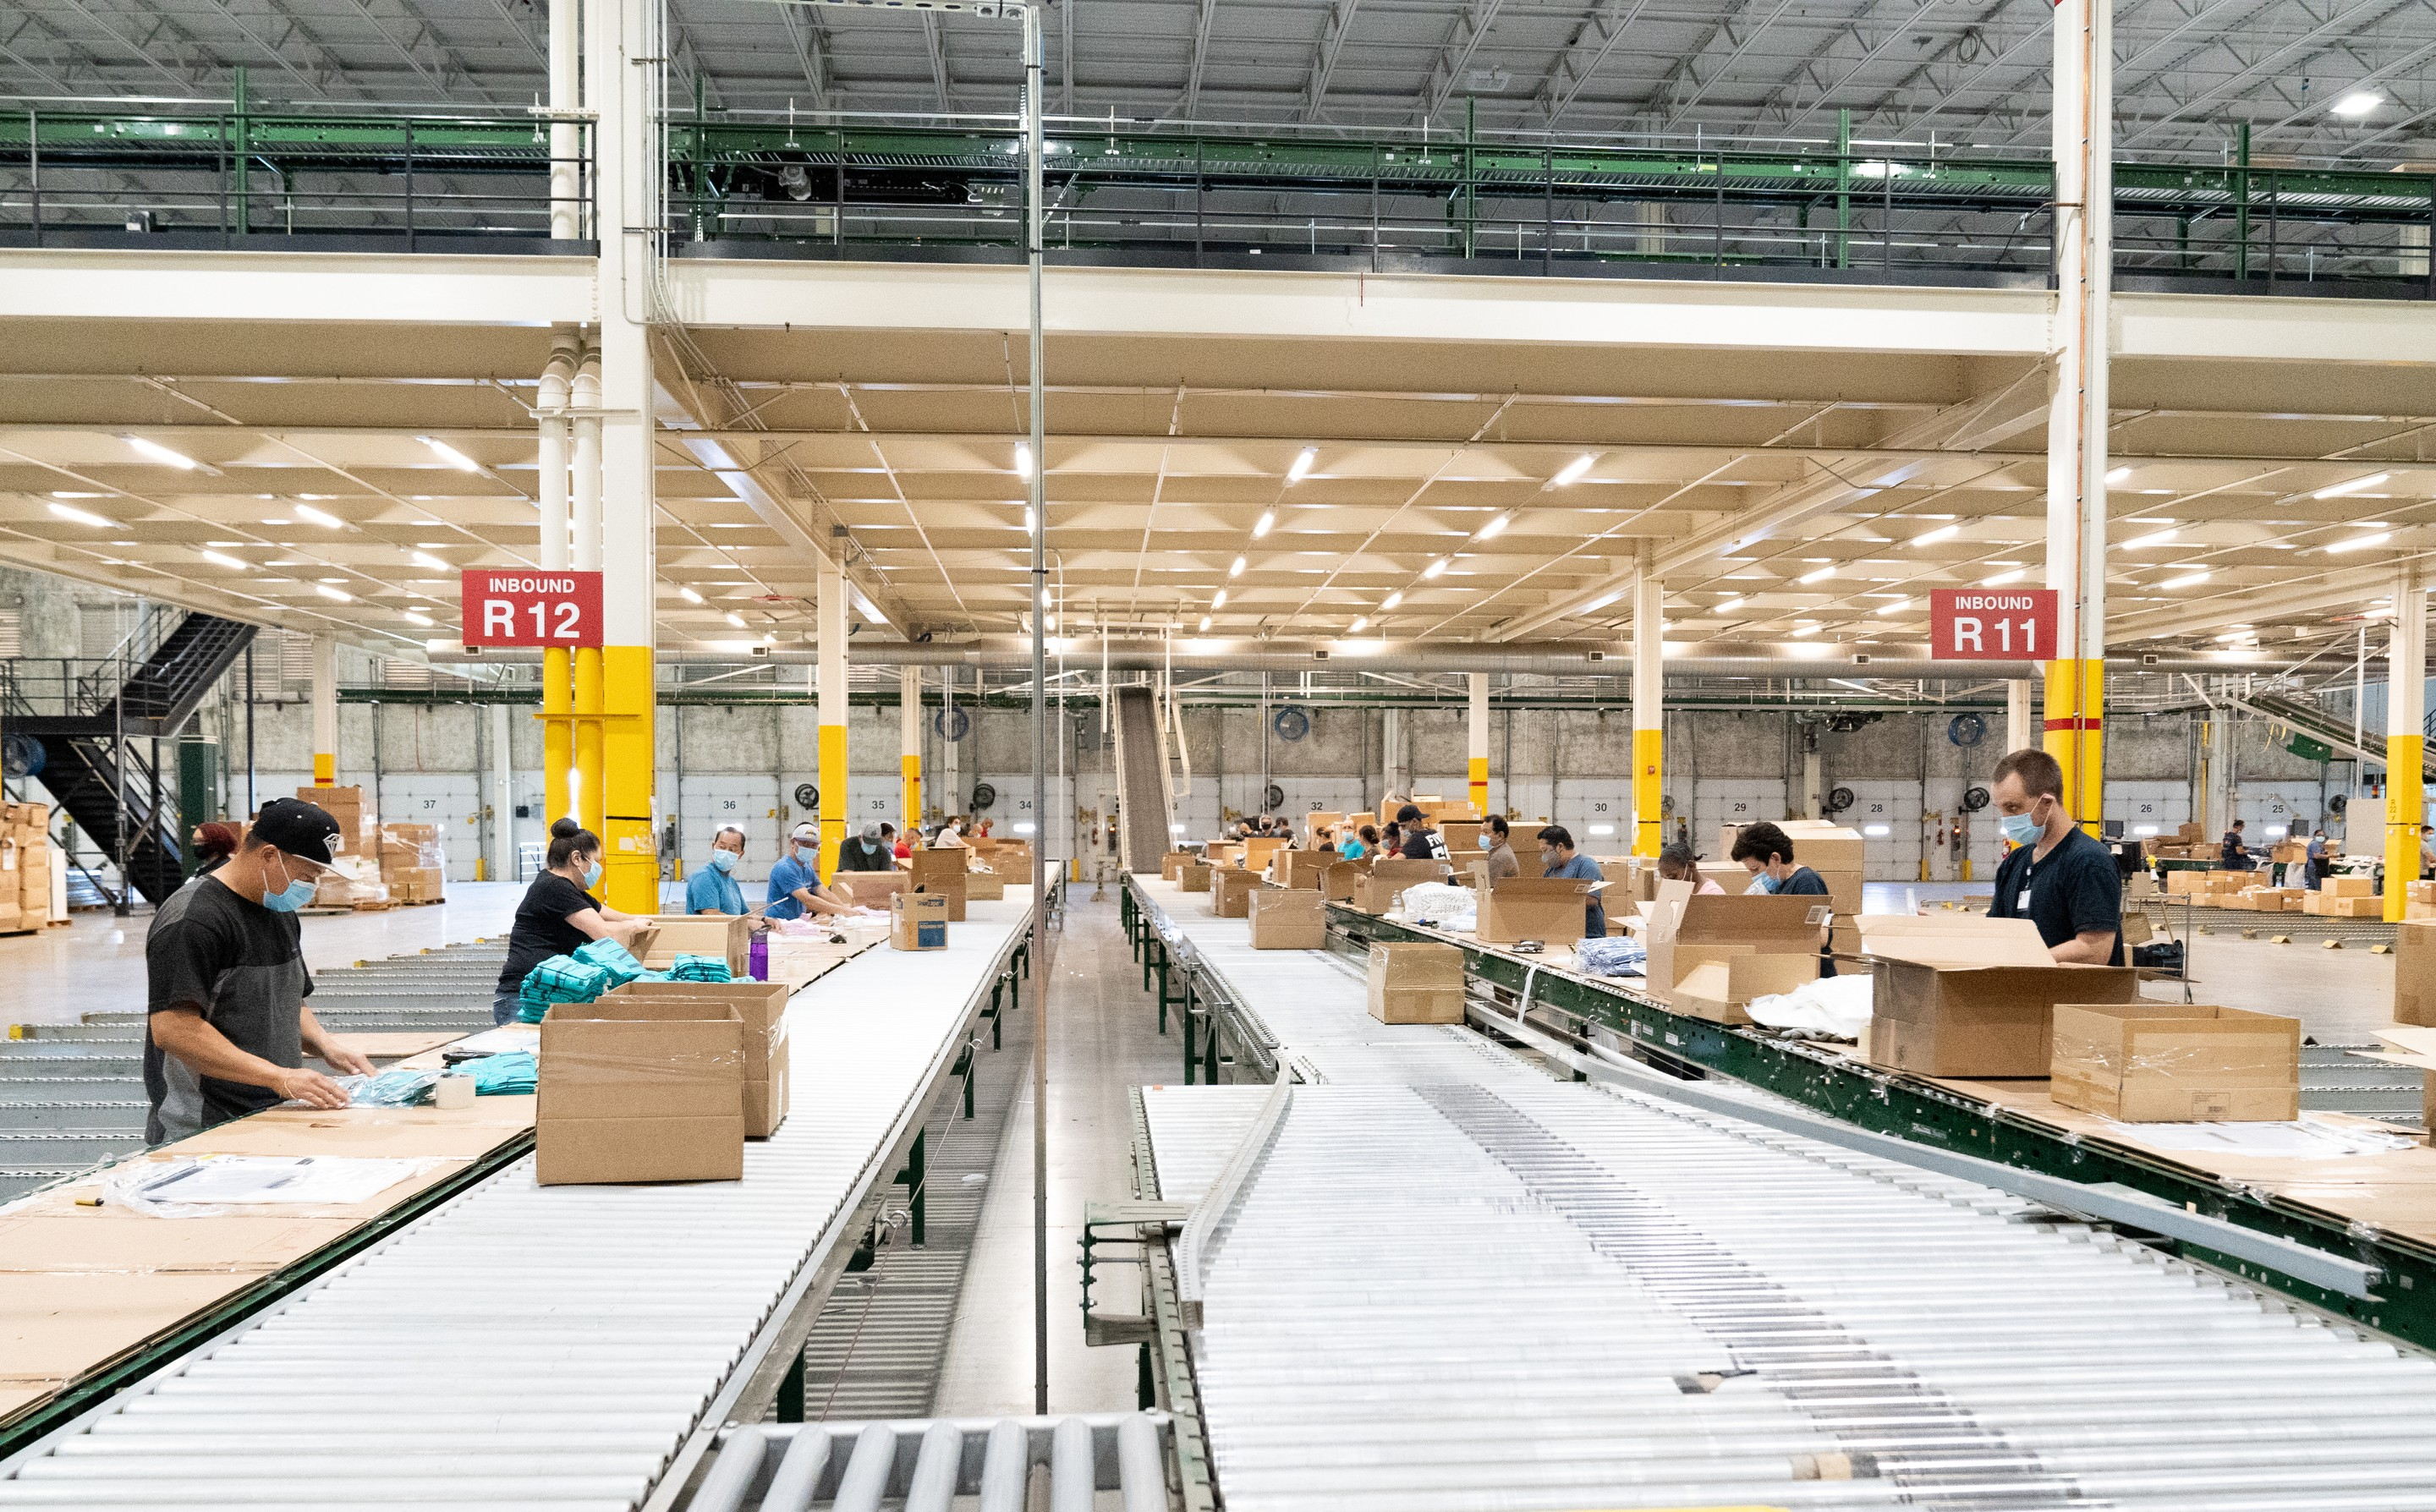 The Gap to open 140m dollar distribution center to meet online shopping demand